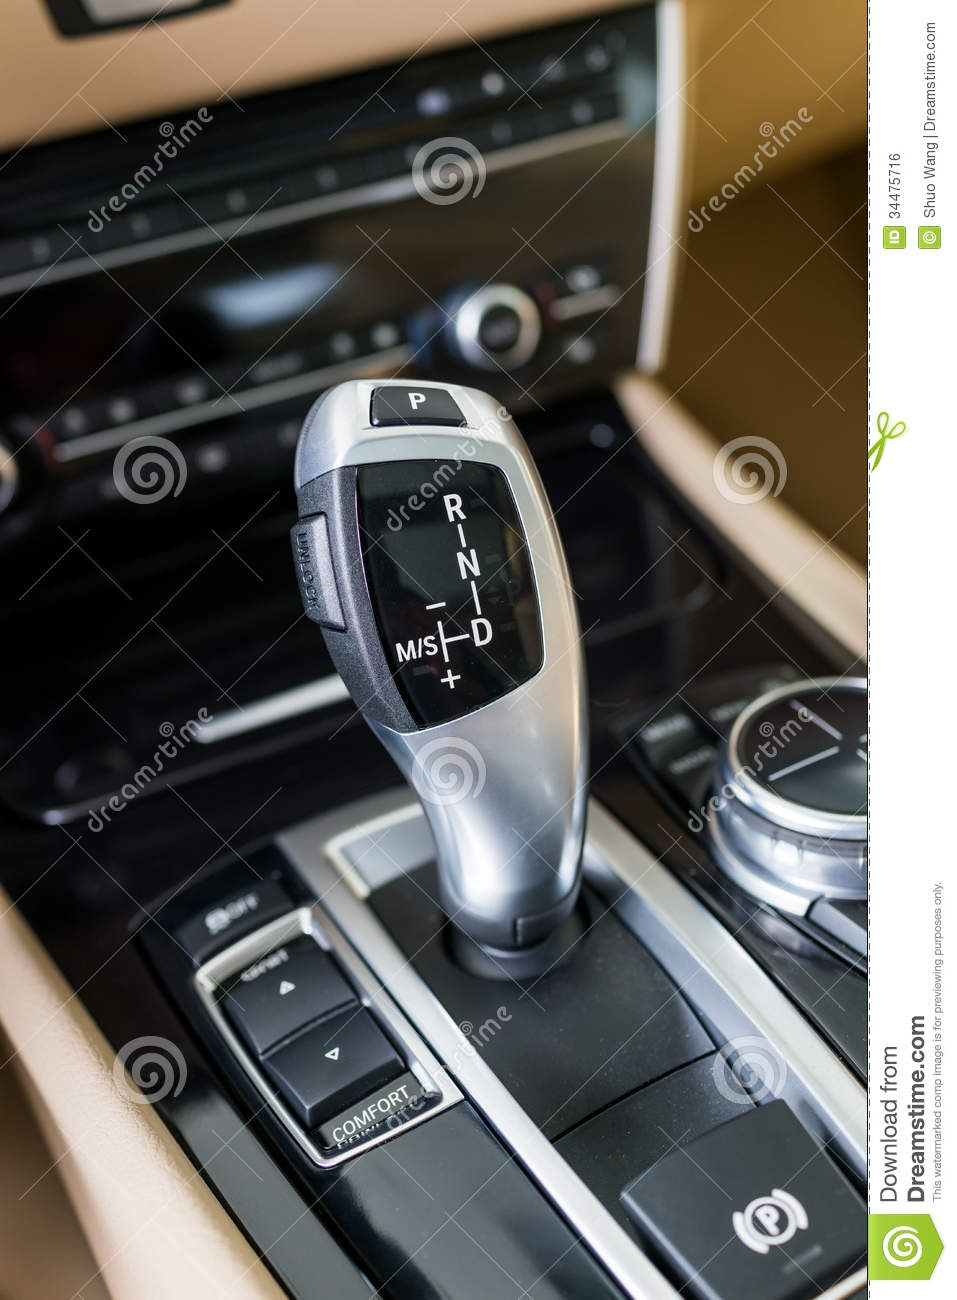 automatic gear shift handle royalty free stock image image 34475716. Black Bedroom Furniture Sets. Home Design Ideas